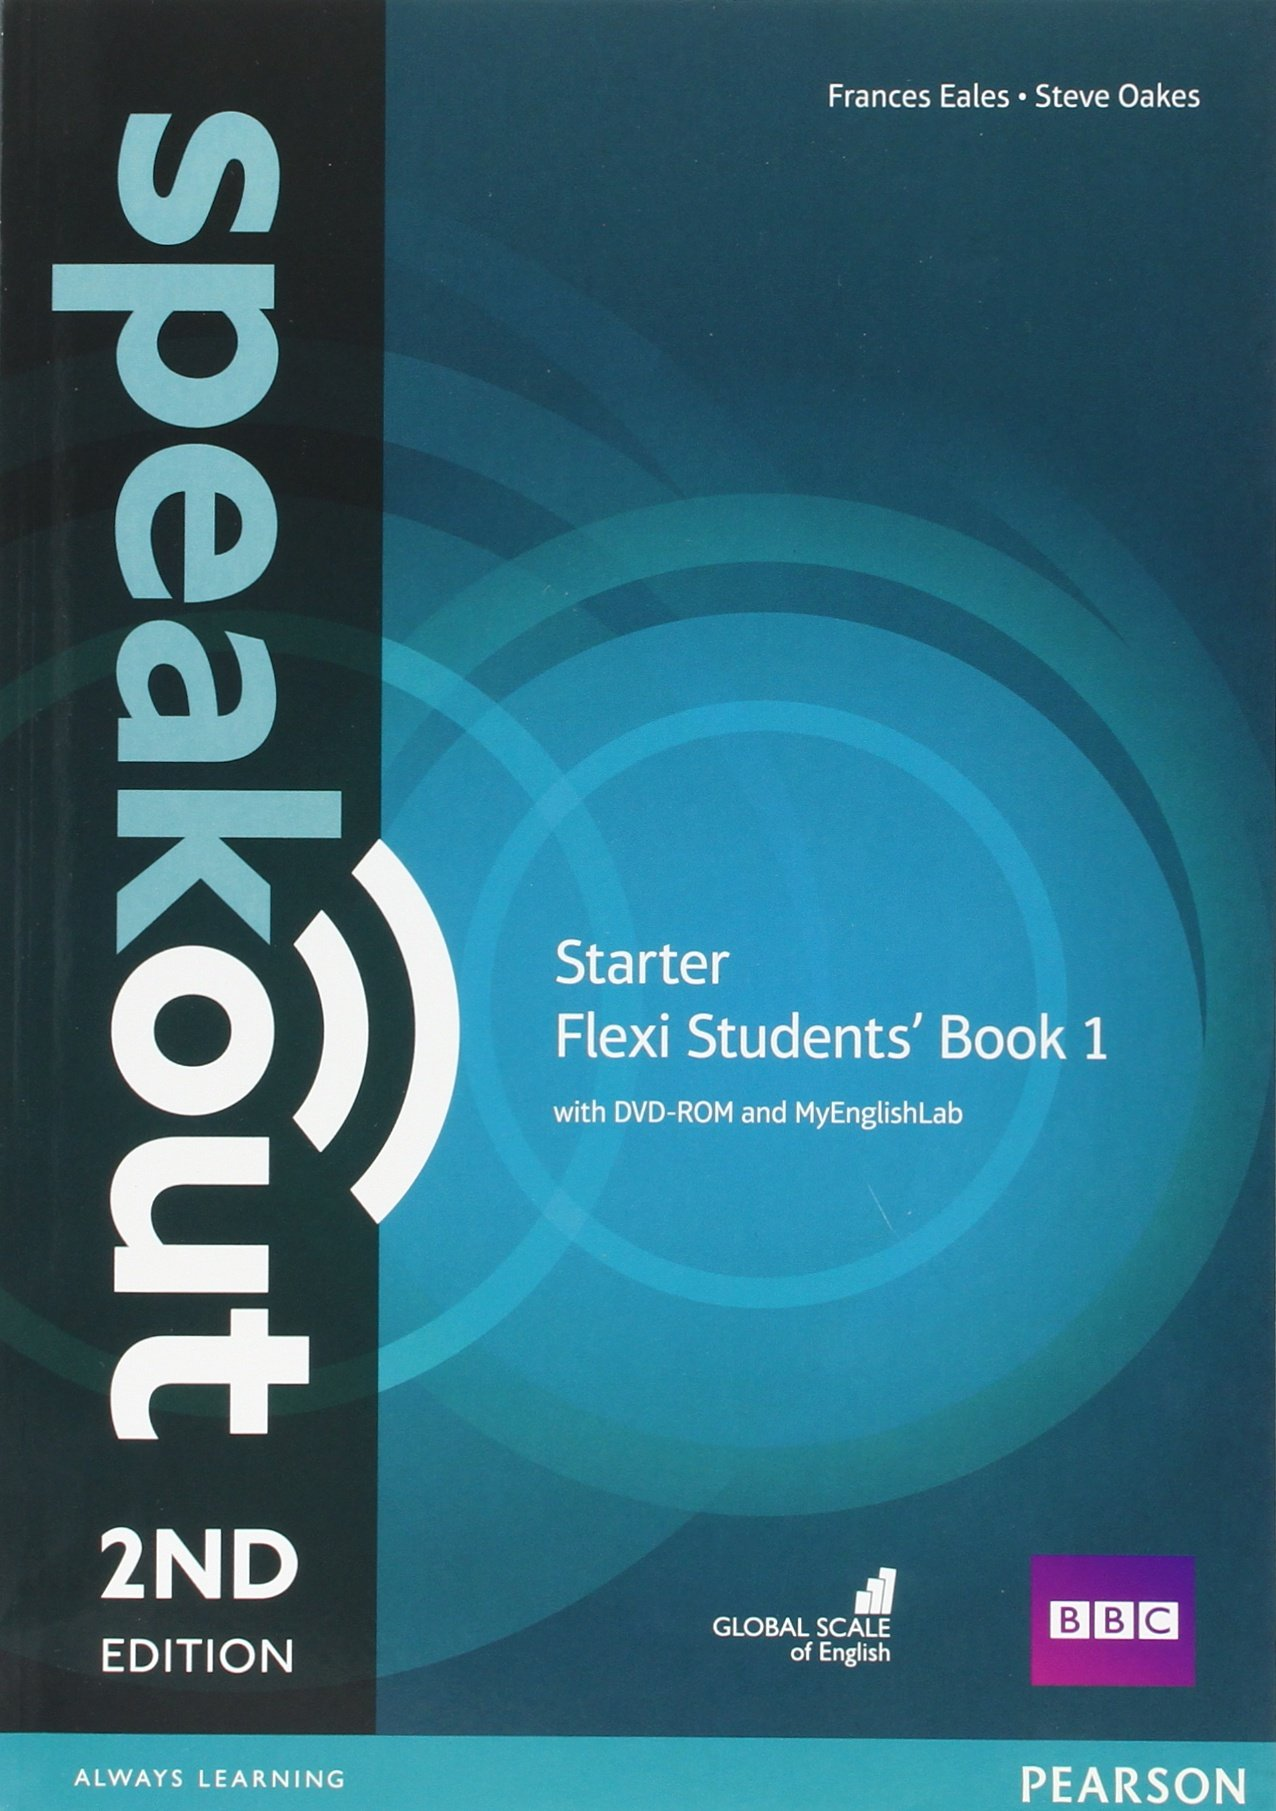 Speakout 2ed Starter Flexi 1 Students' Book 1 with DVD-ROM and MyEnglishLab